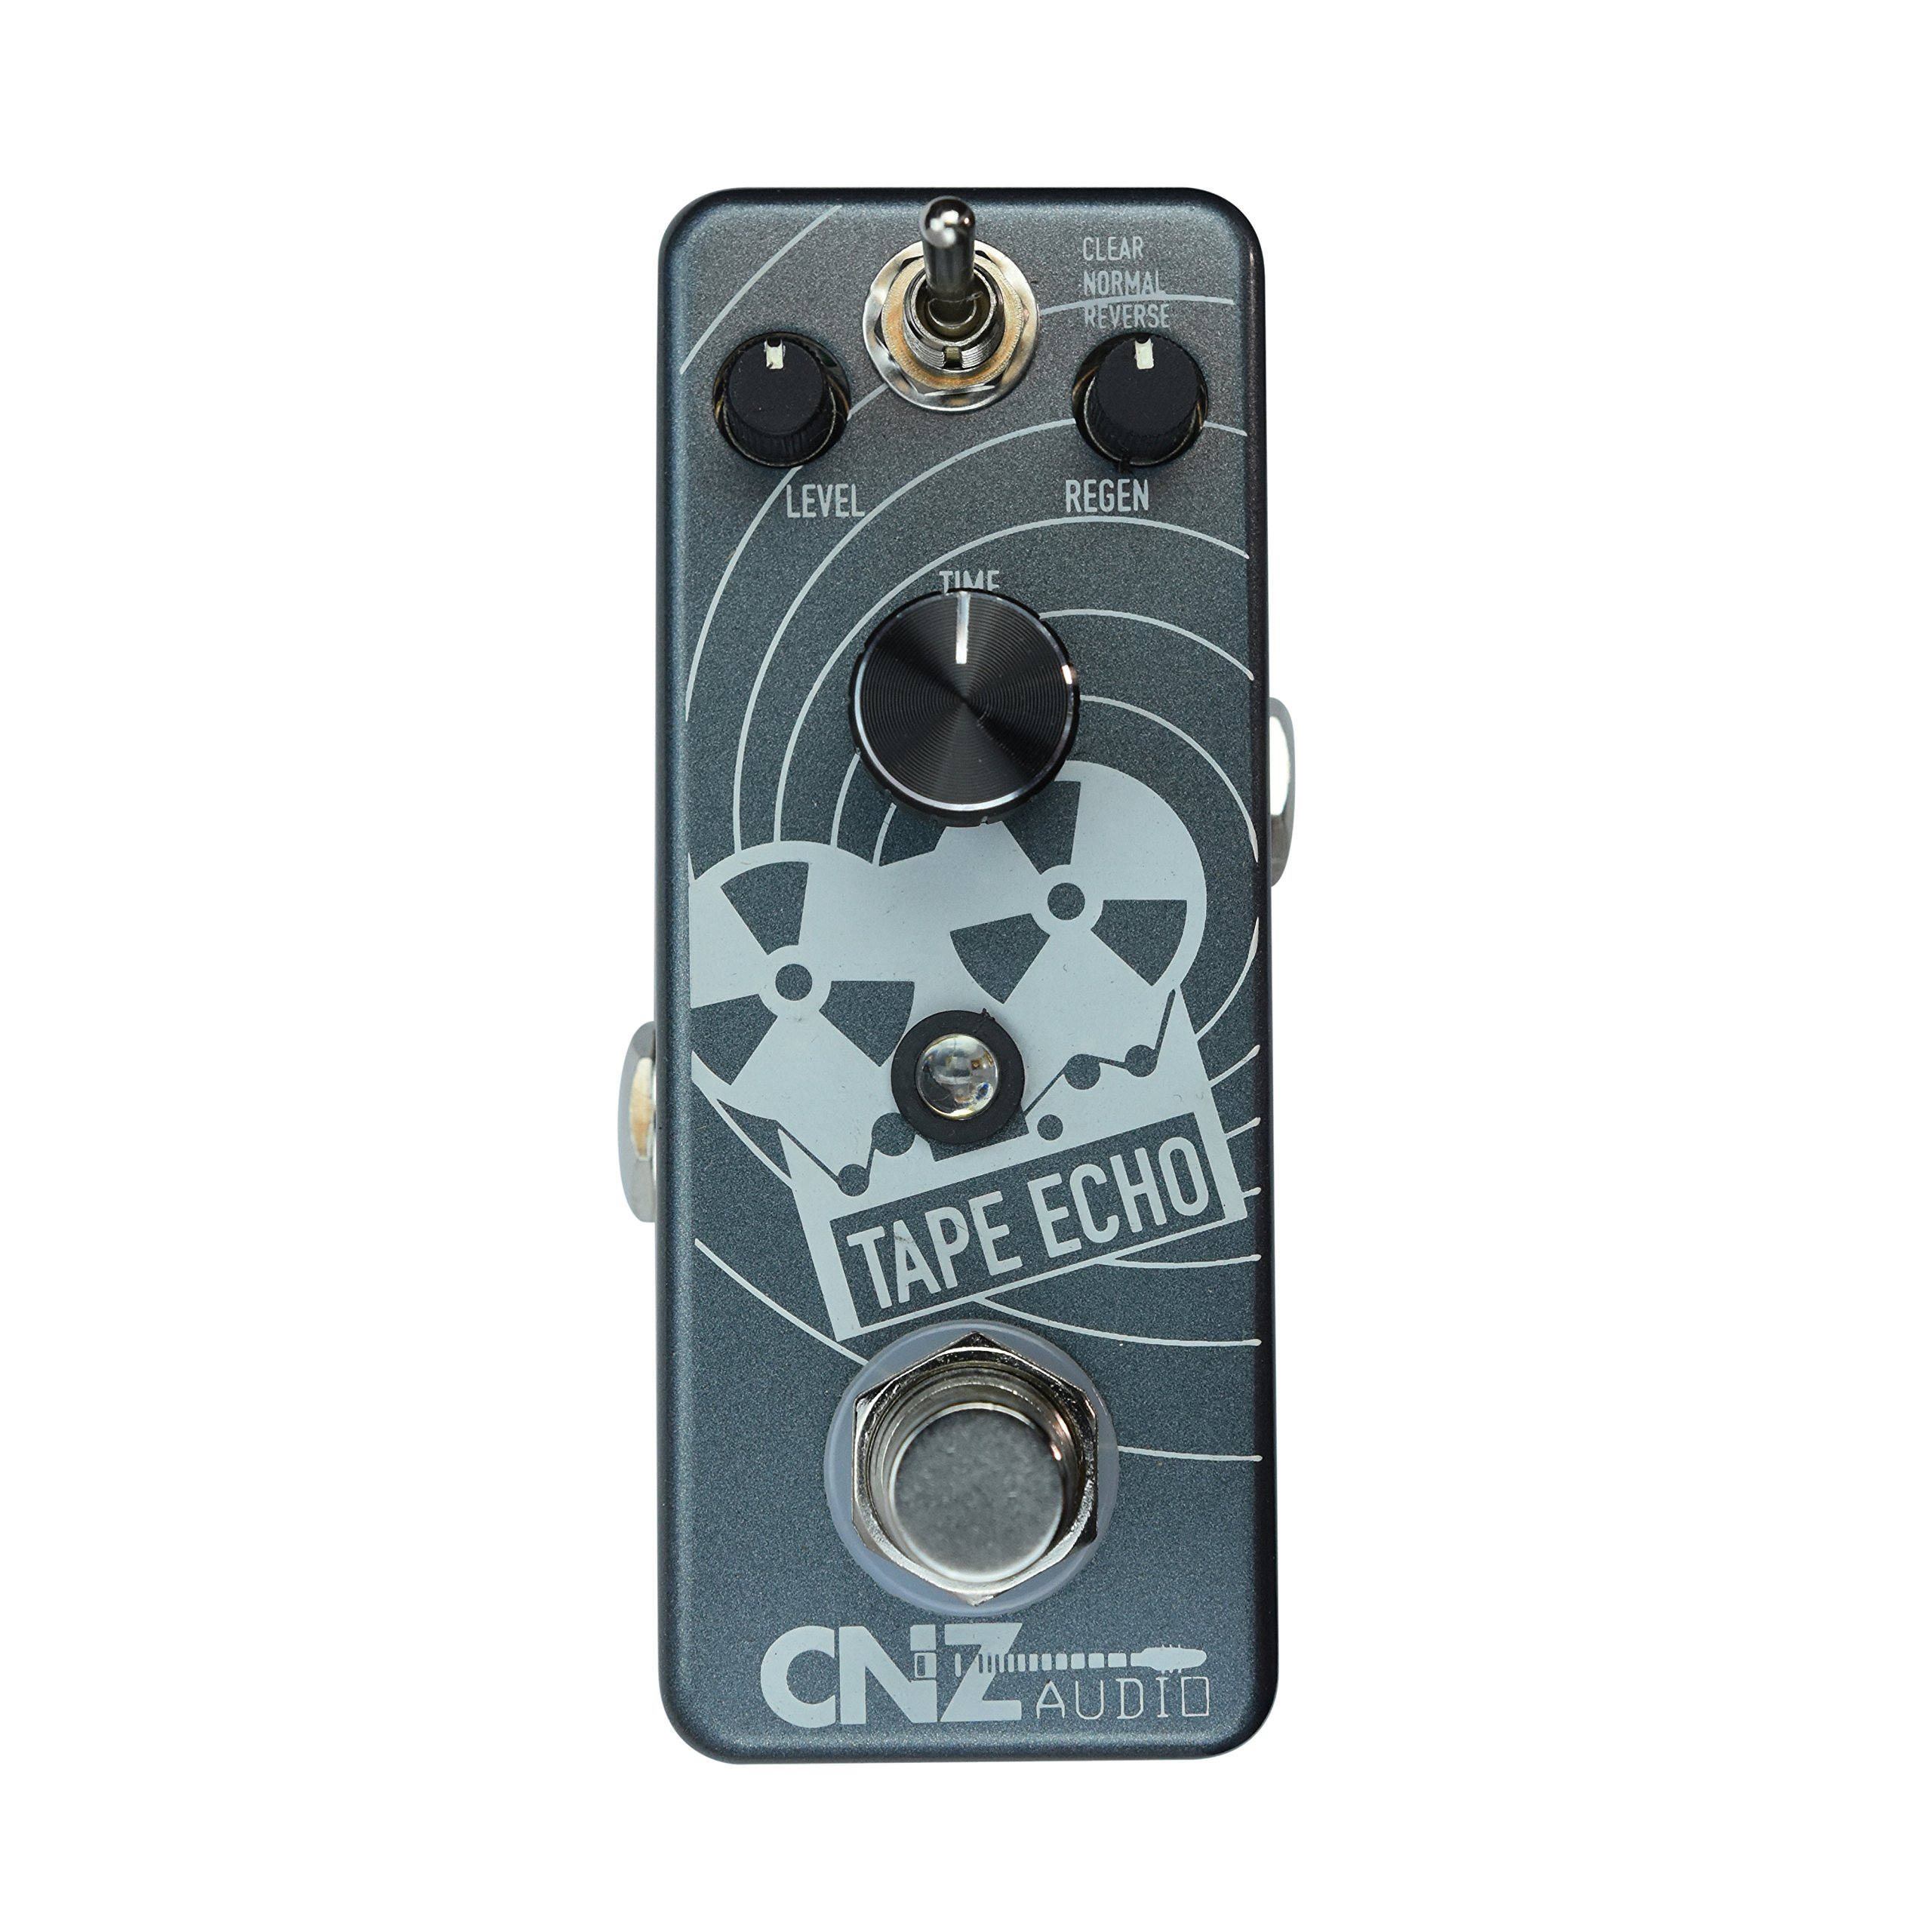 CNZ Audio Tape Echo Guitar Effects Pedal